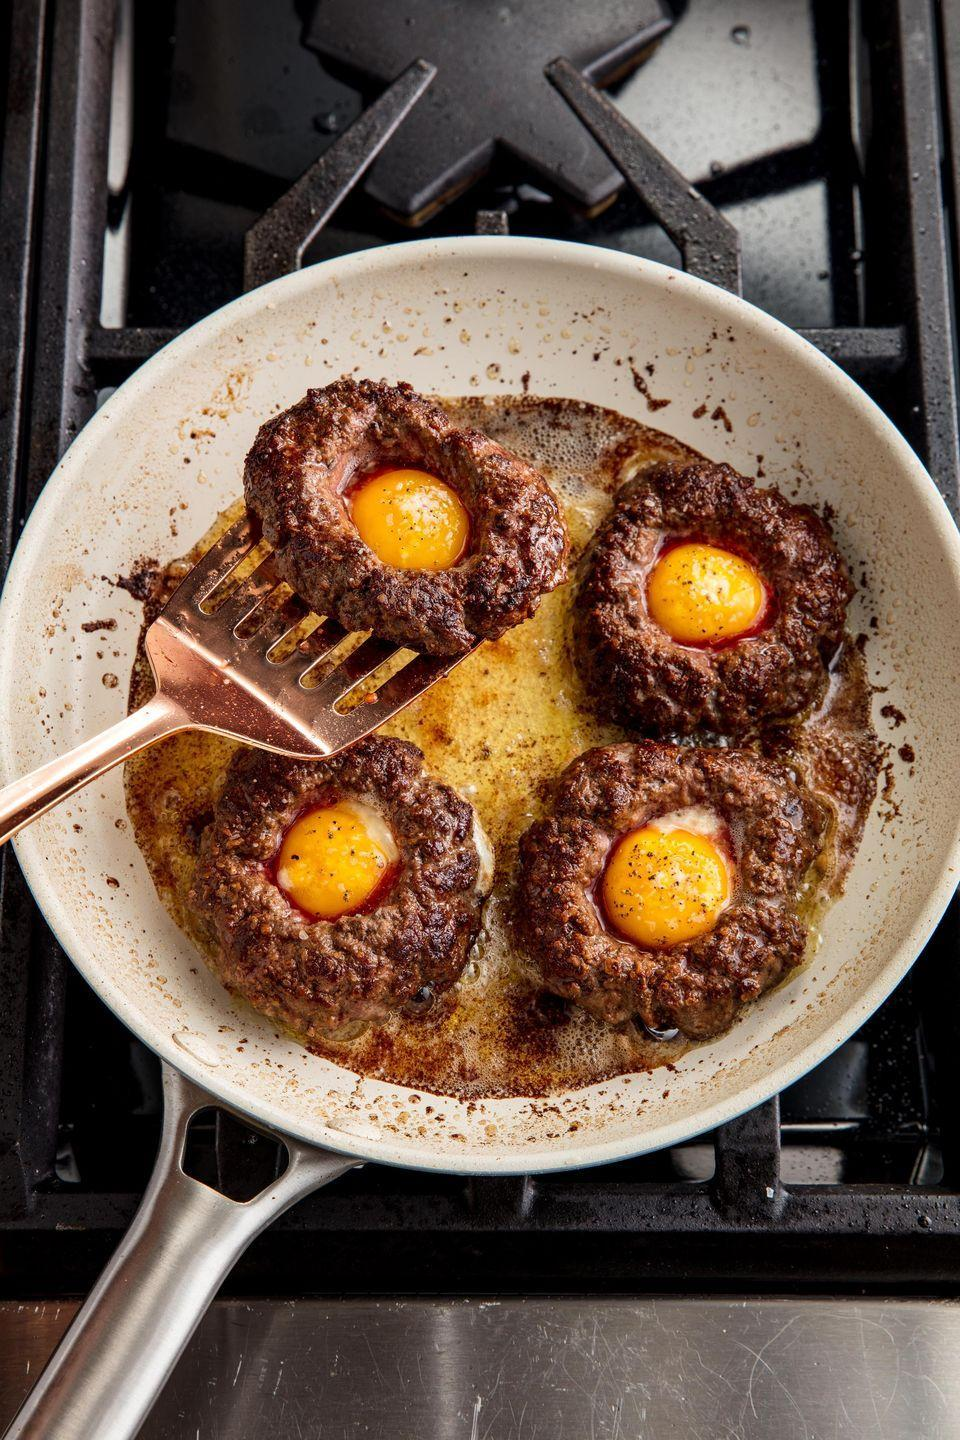 "<p><span>The high-protein dinner of your dreams.</span></p><p><span>Get the recipe from </span><a href=""https://www.delish.com/cooking/recipe-ideas/recipes/a42791/egg-in-a-hole-burger/"" rel=""nofollow noopener"" target=""_blank"" data-ylk=""slk:Delish"" class=""link rapid-noclick-resp"">Delish</a><span>.</span><br></p>"